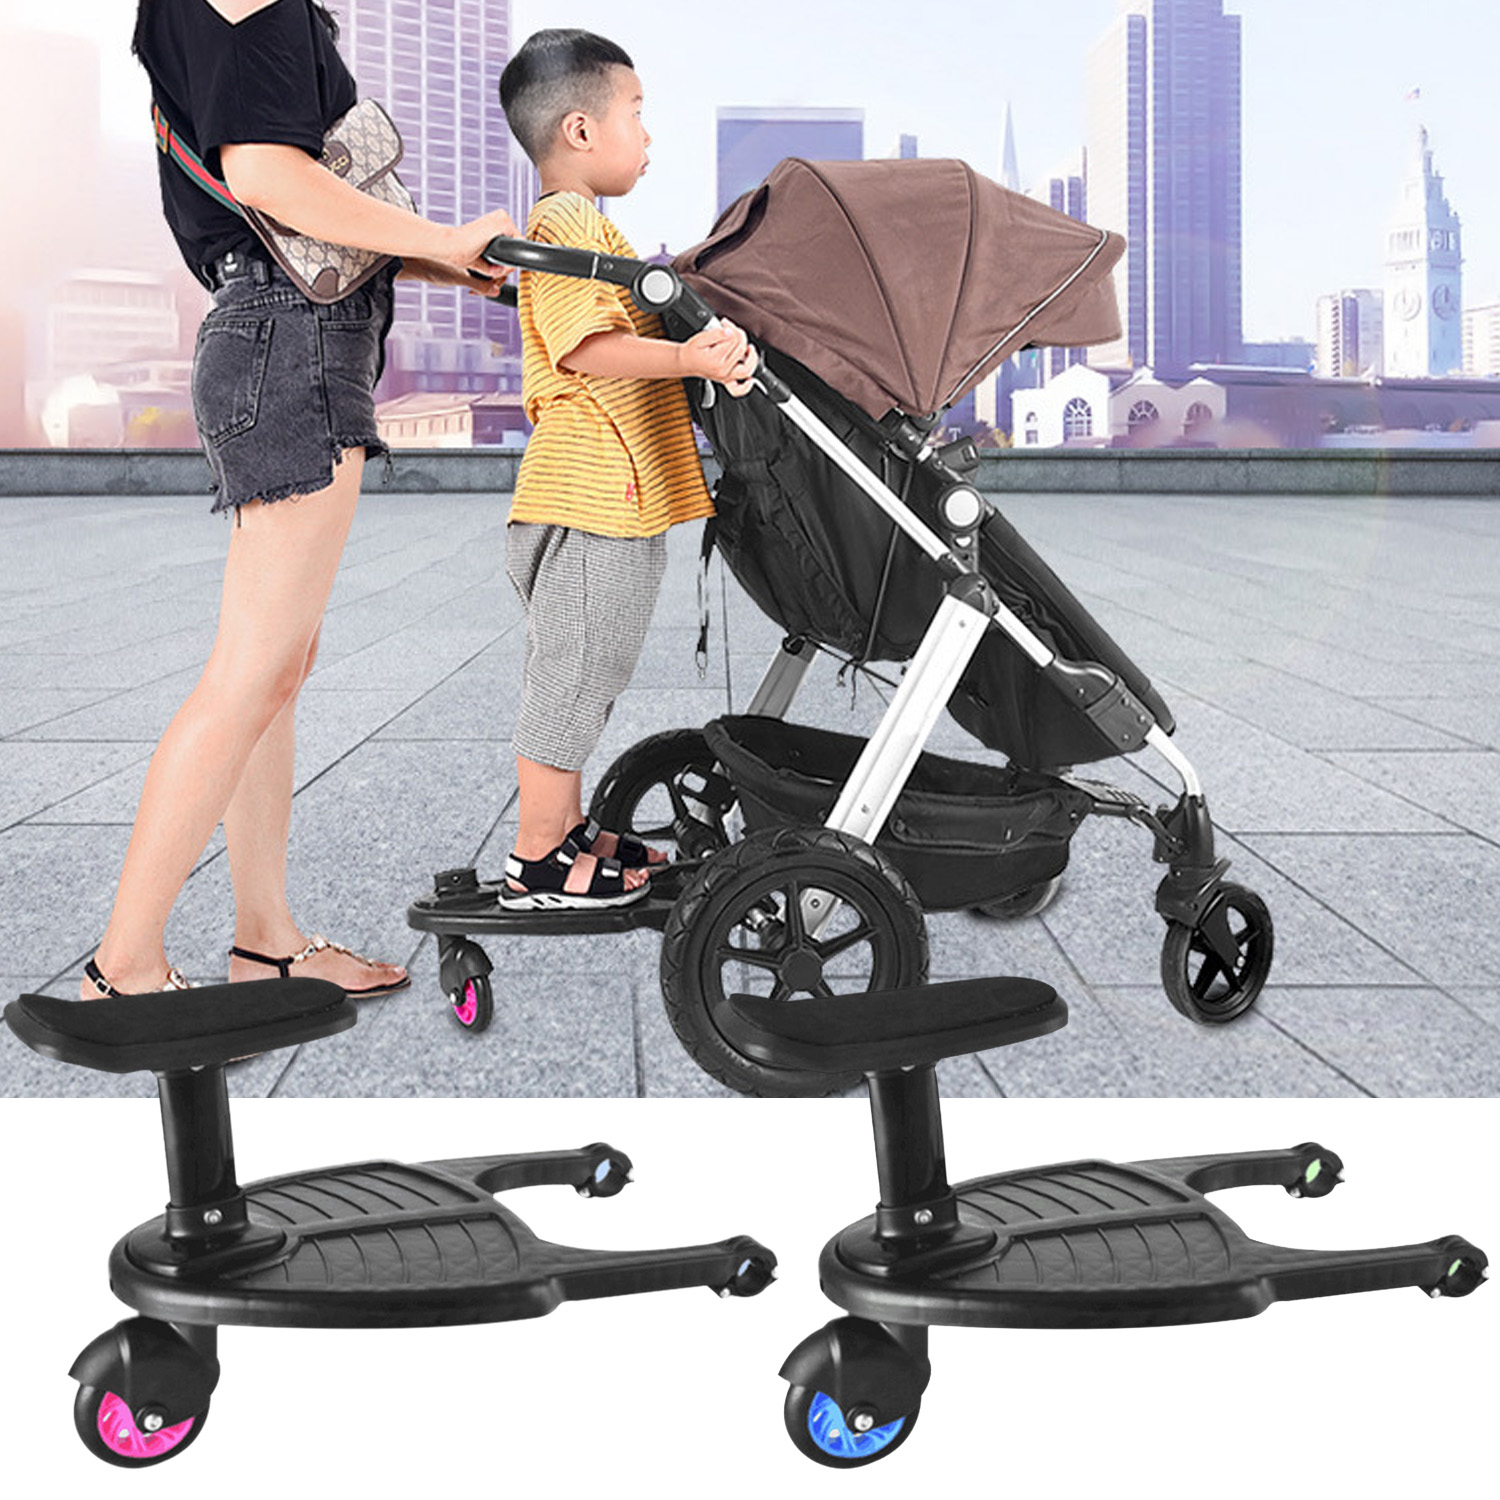 Stroller Auxiliary Pedal Adapter Wheeled Board Stroller Child Auxiliary Traile Standing Plate Sitting Seat Stroller Accessories